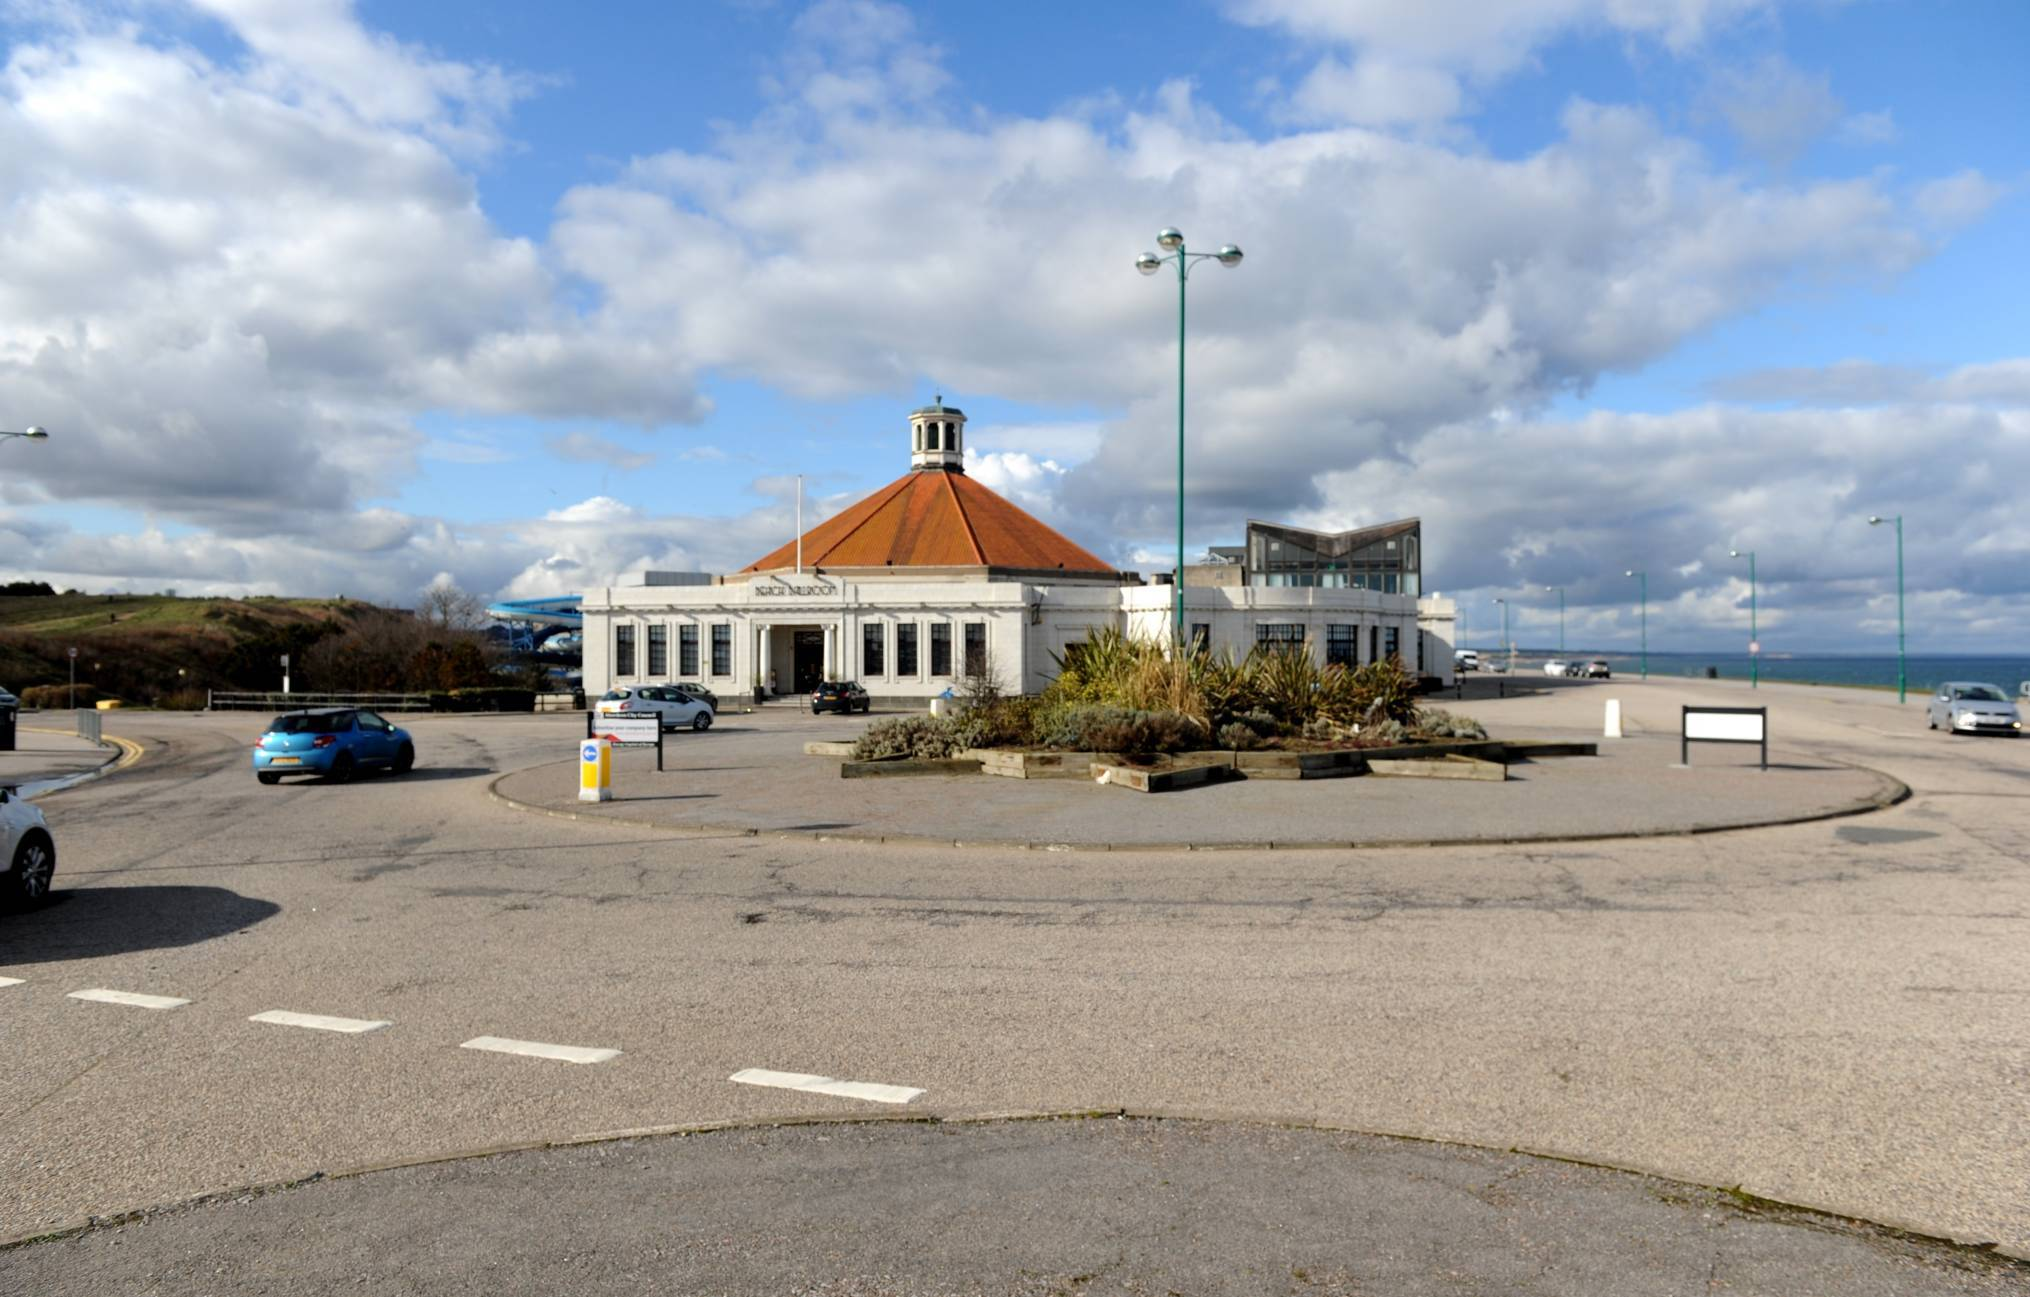 The plans could see the Esplanade roundabout at the Beach Ballroom removed.